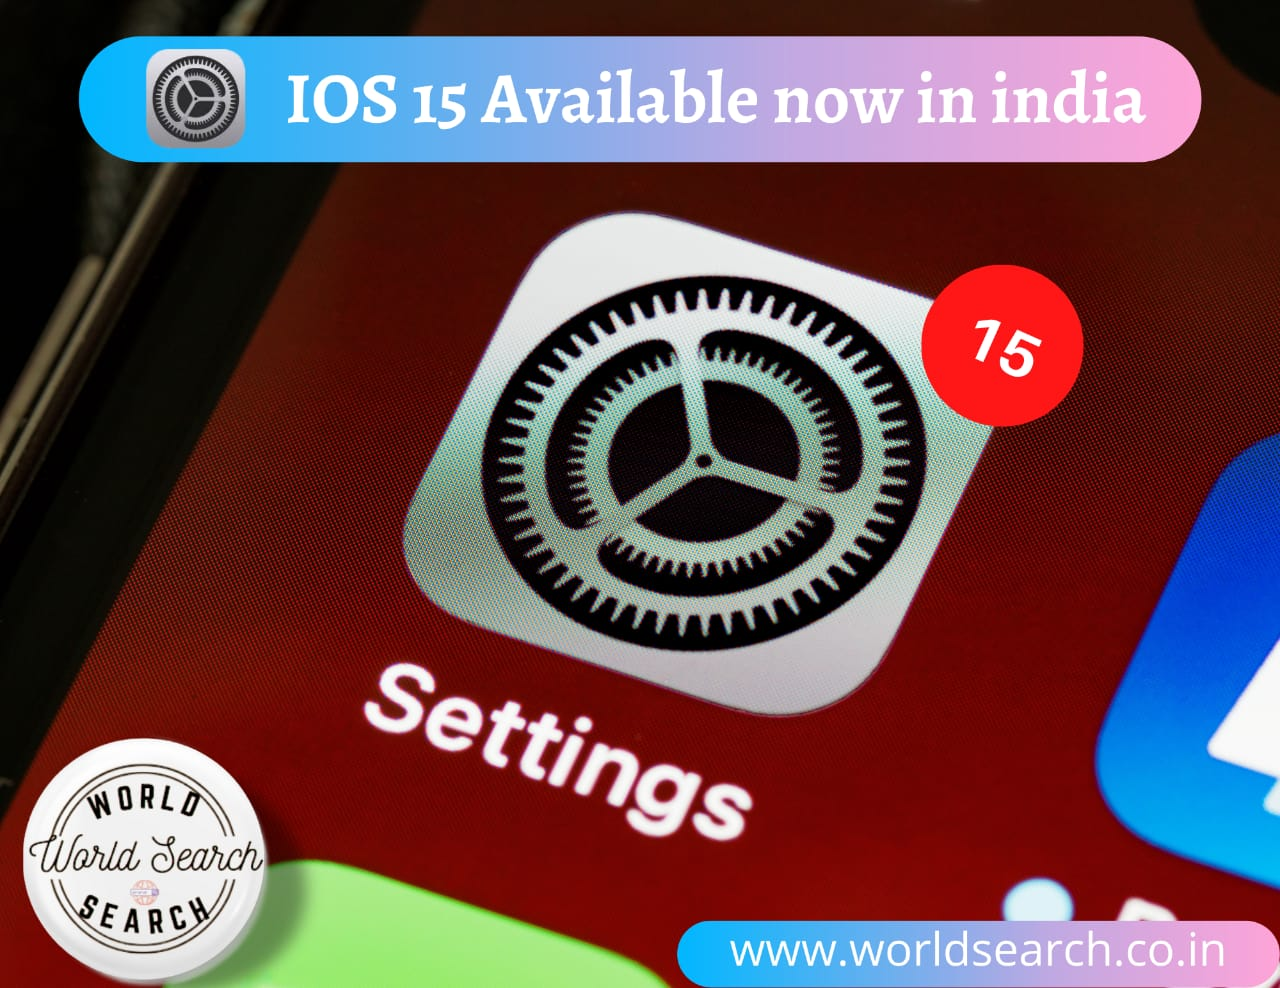 IOS 15 Available now in india